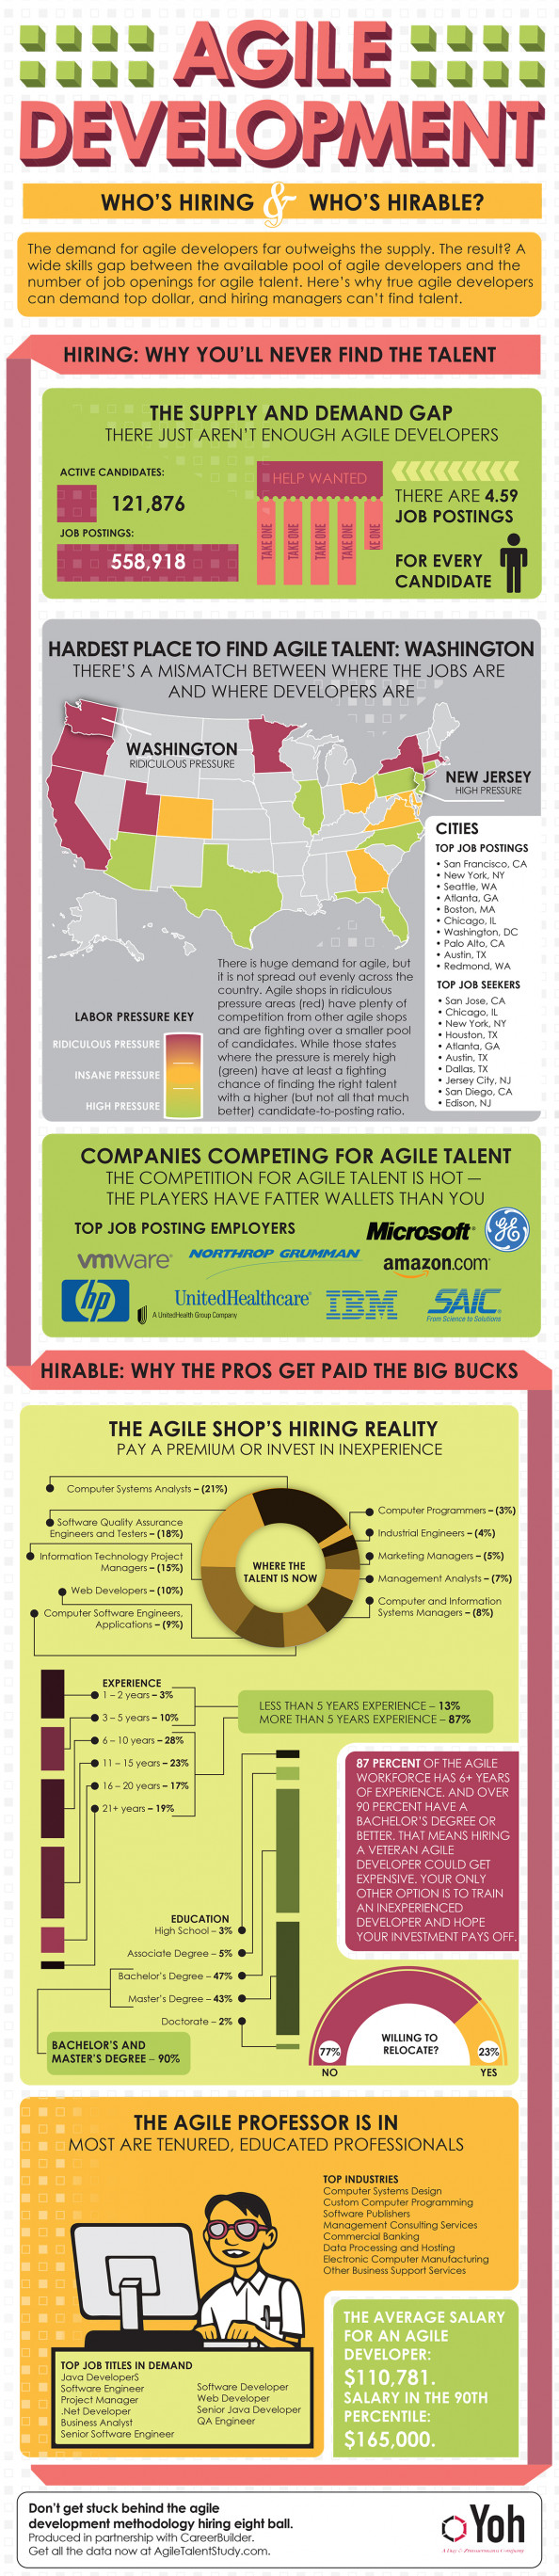 Agile Development: Who&#039;s Hiring &amp; Who&#039;s Hirable Infographic